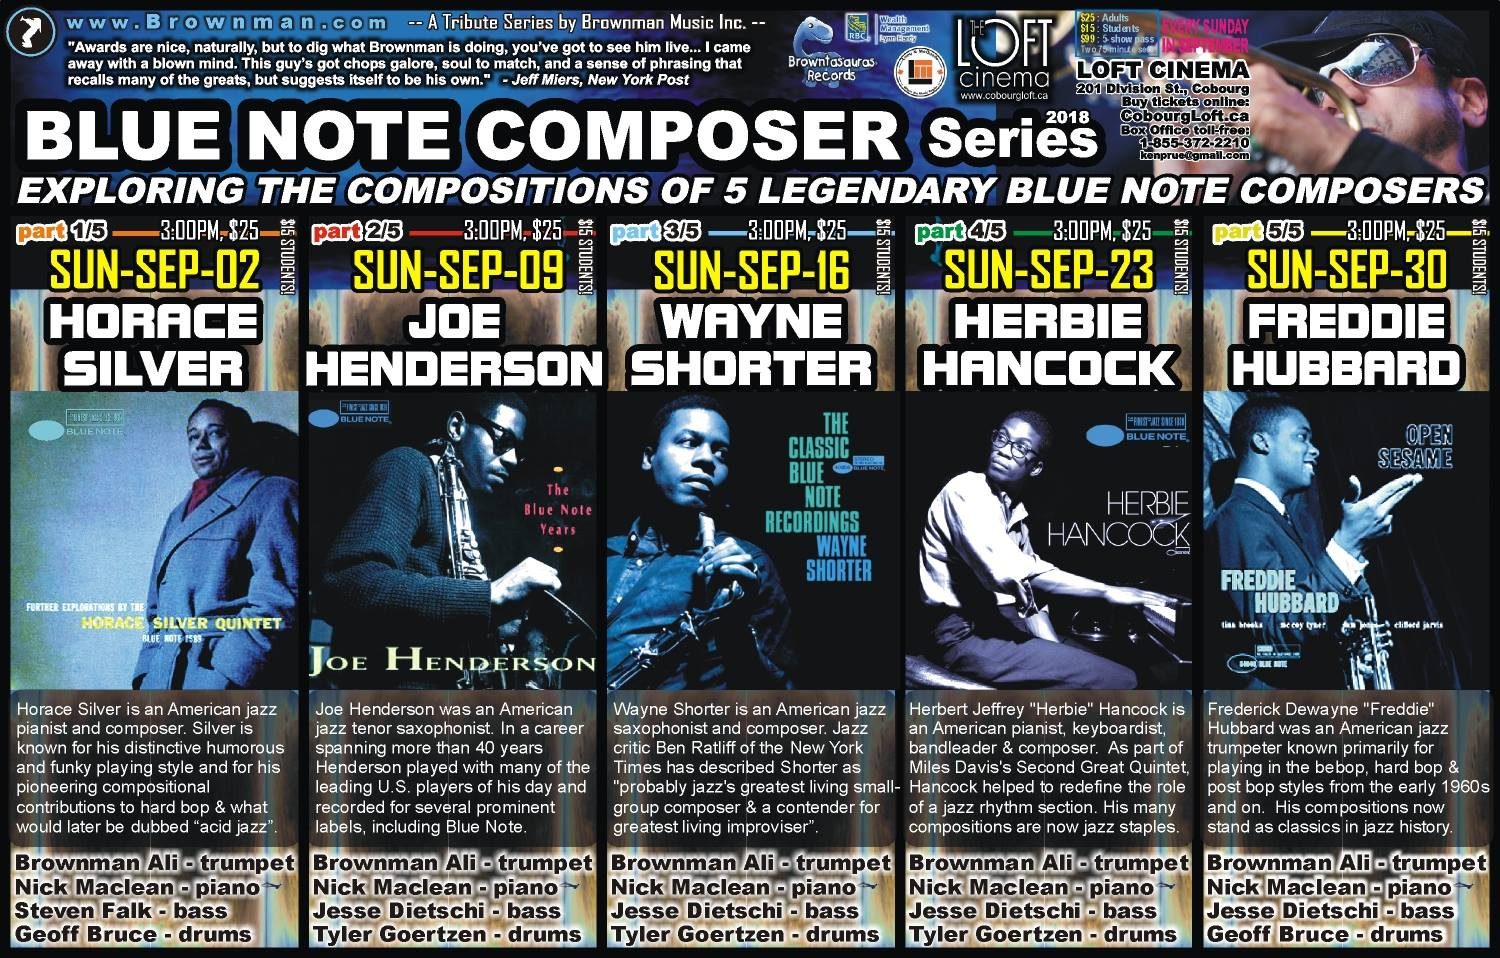 Blue Note Composer Series: Every Sun In Sep, Cobourg, 3-6pm, $25